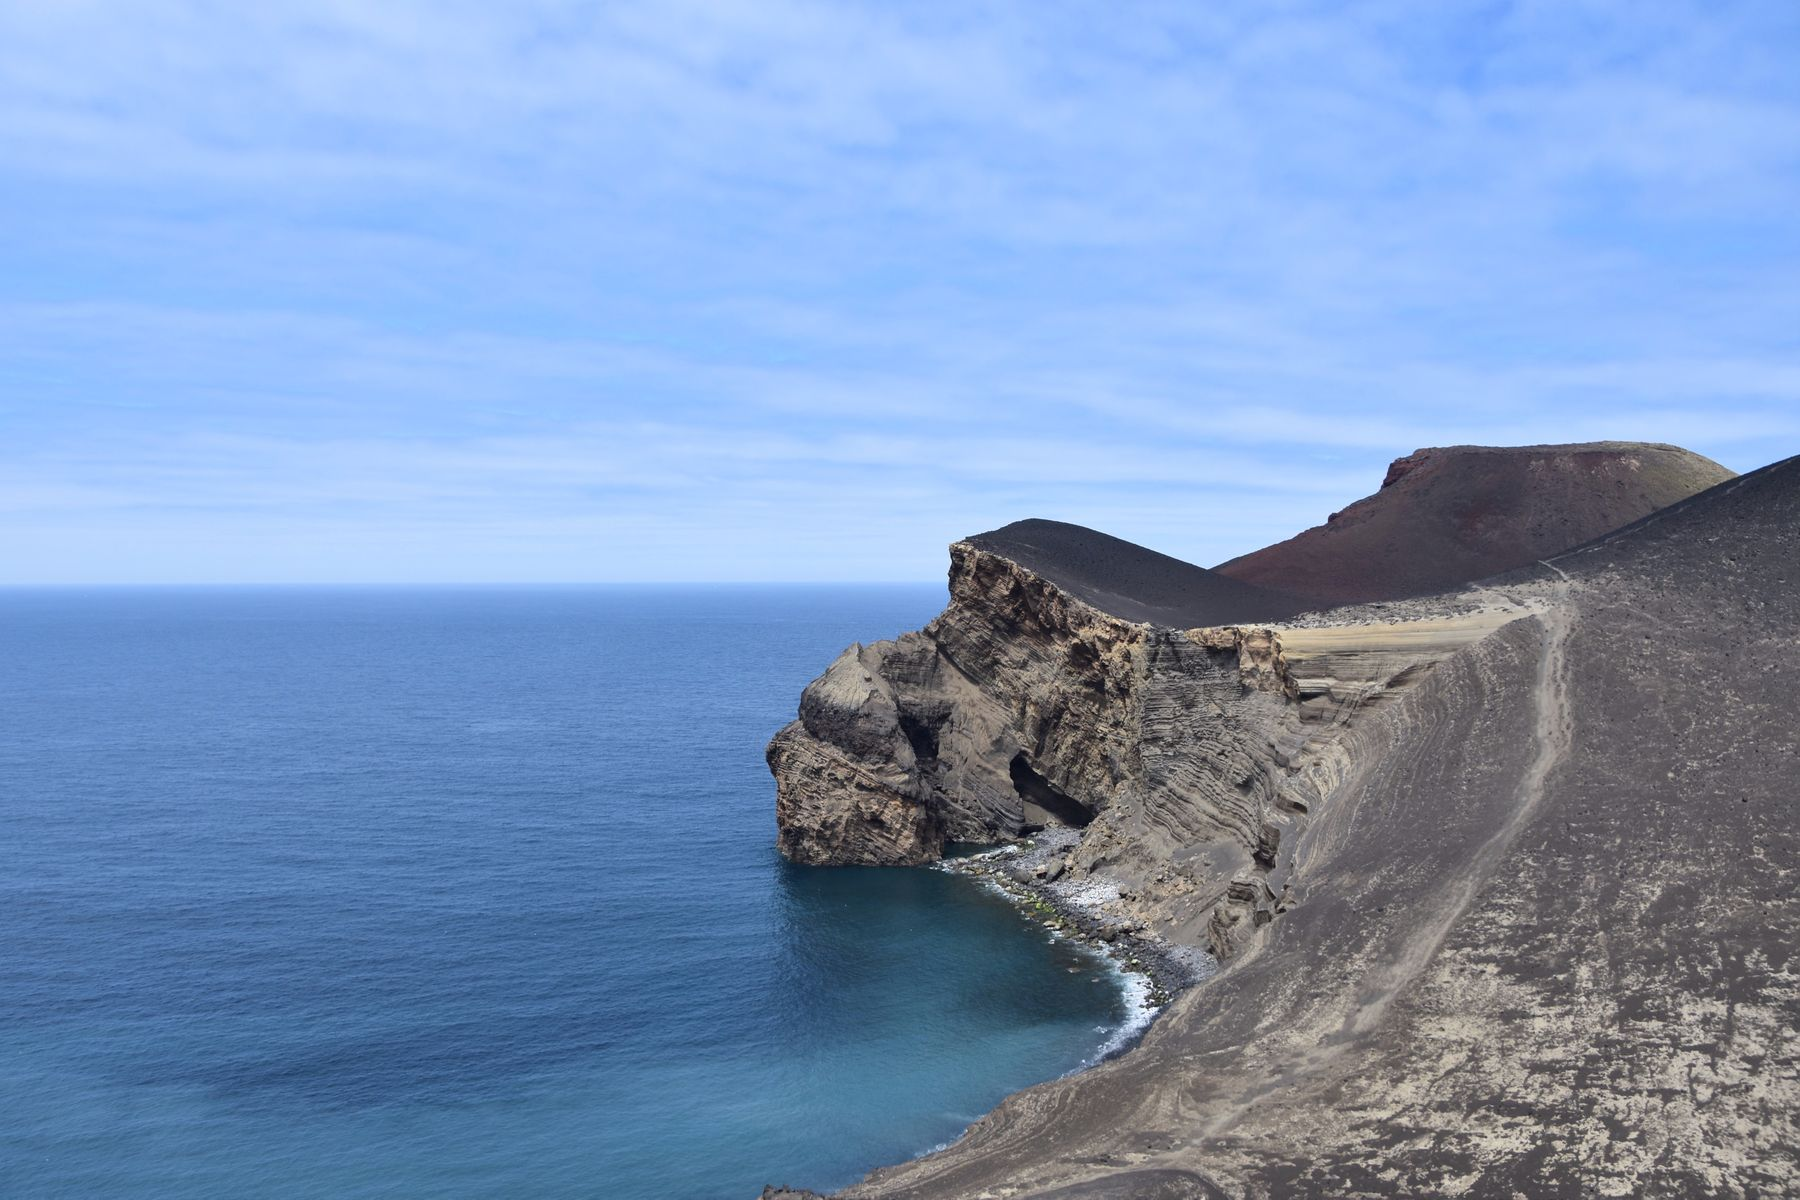 volcanic erupted part of the Faial island, Azores, Portugal next to the ocean